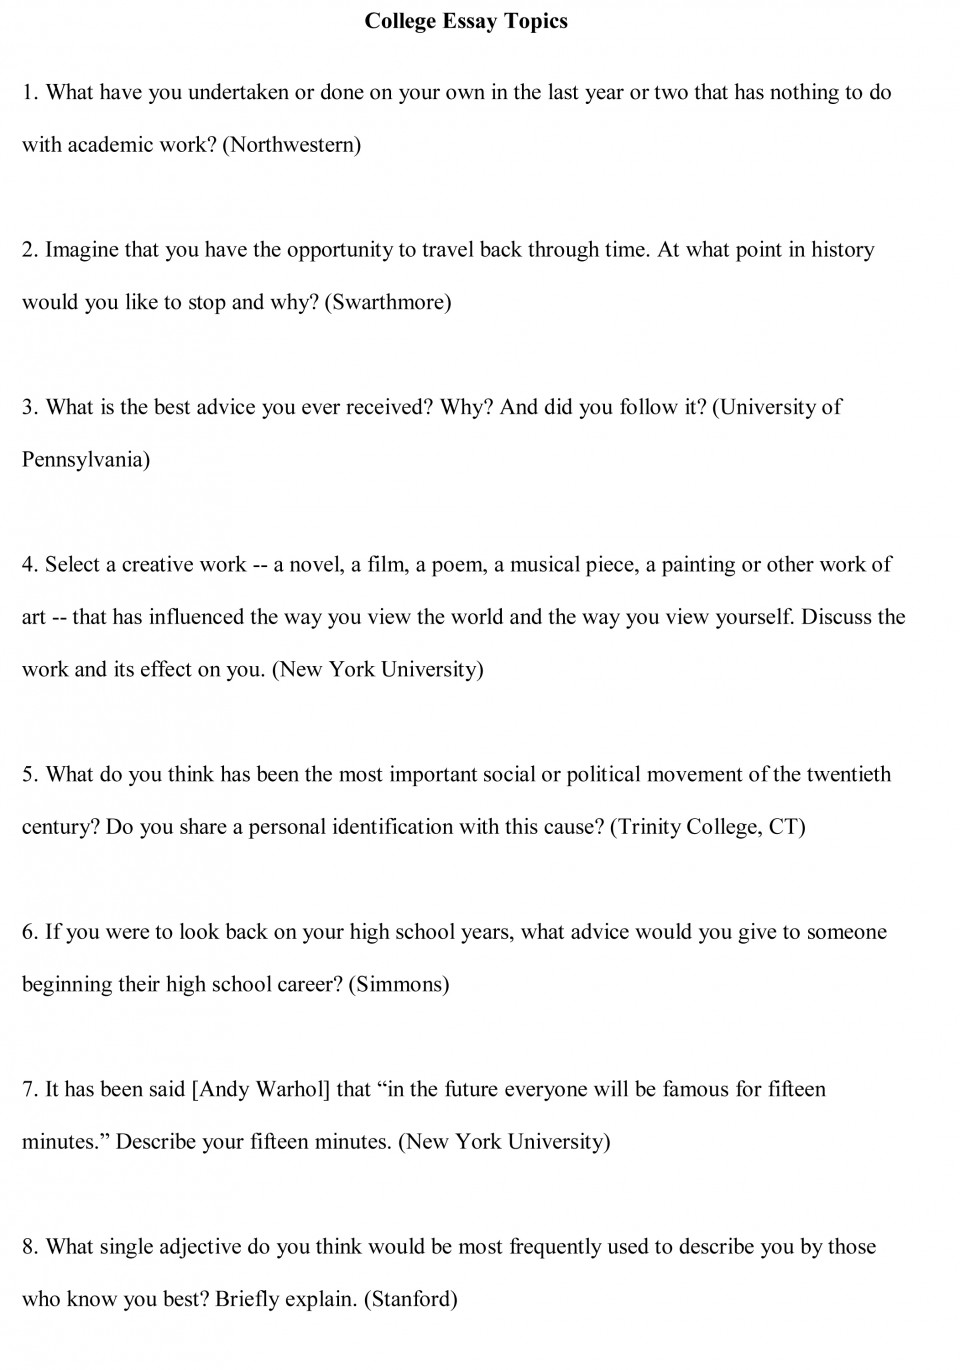 014 Essay Topics College Free Sample1 Archaicawful Writing For 6th Graders List Ielts Prompts 5th 960